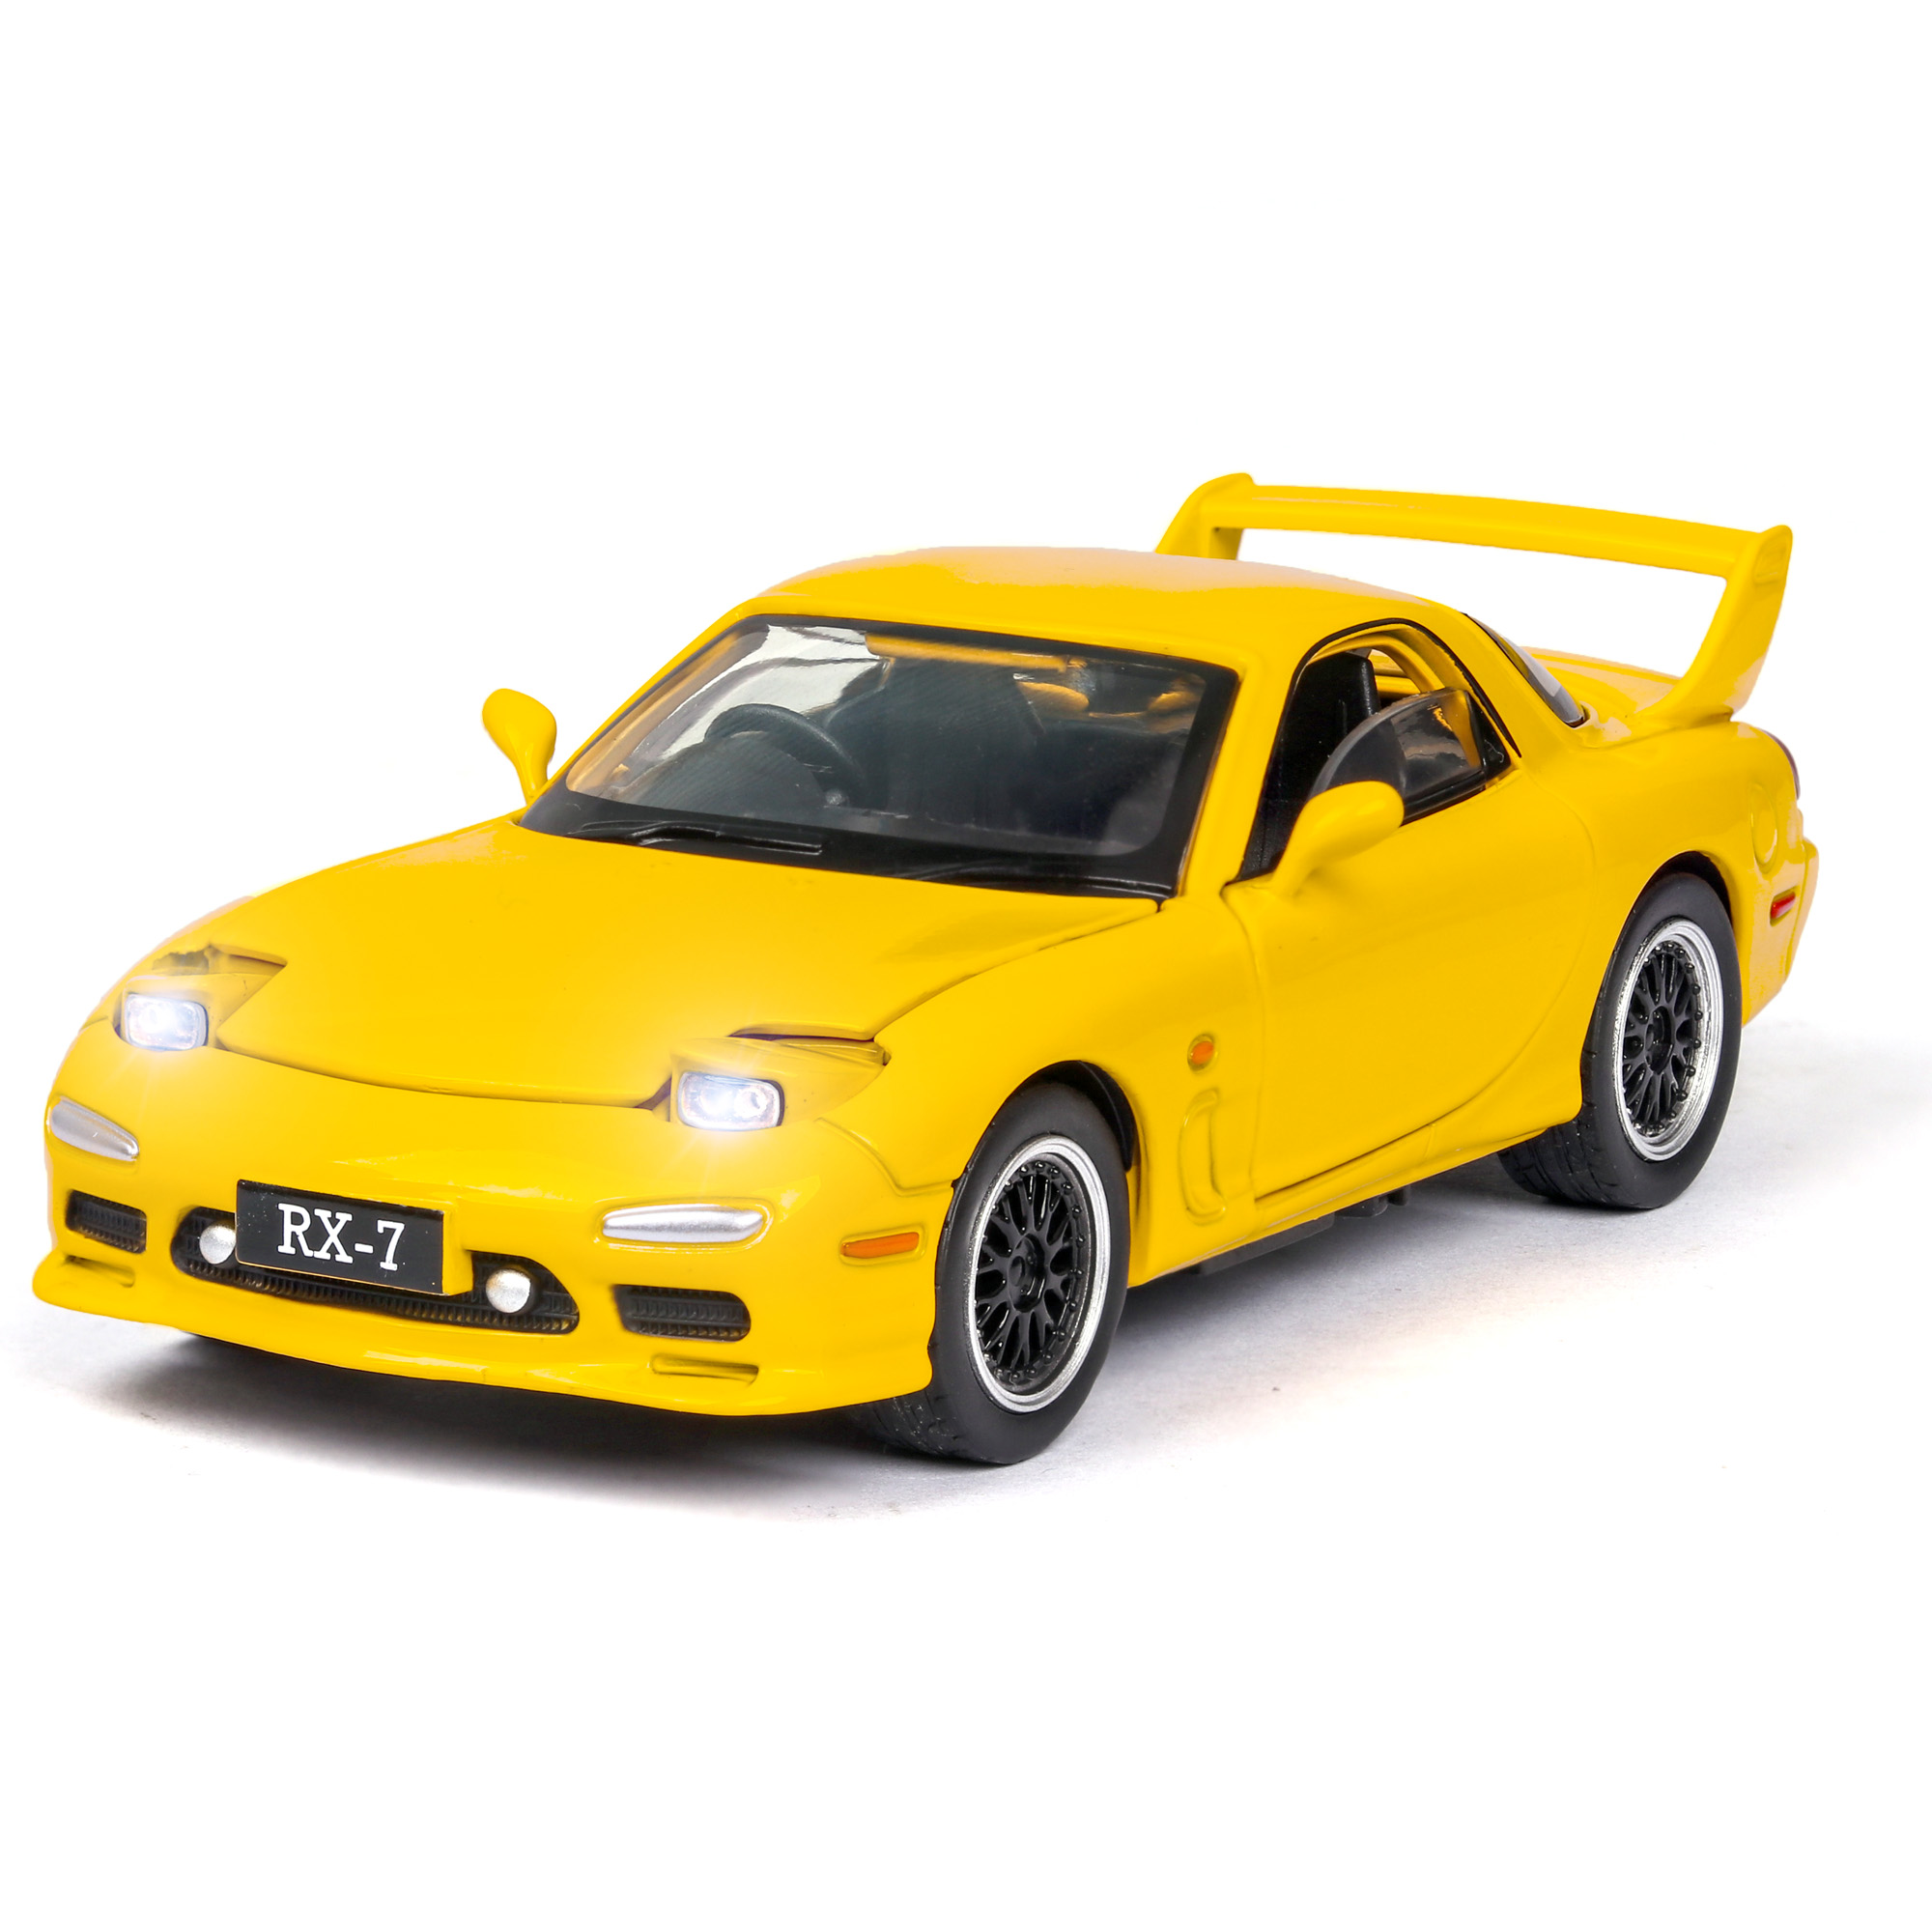 1:32 NEW Simulator Car Mazdas RX-7 Car Model With Sound Light Alloy Toy Car Diecast Toy Vehicle Hot Car Wheel For Children Toys